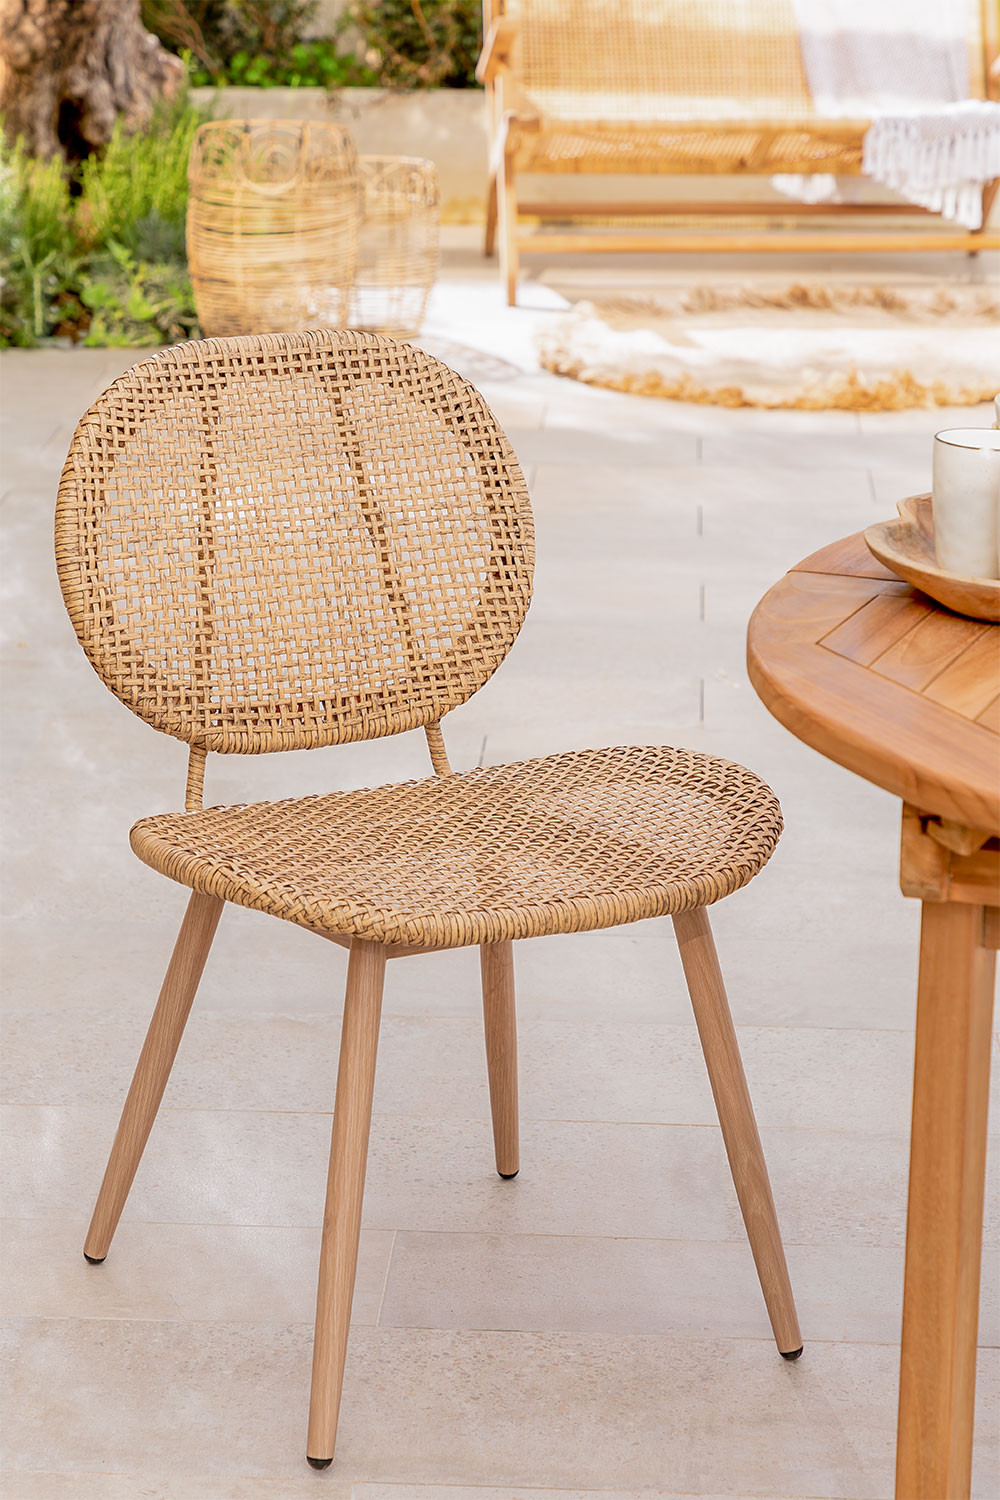 Synthetic Wicker Garden Chair Mity , gallery image 1